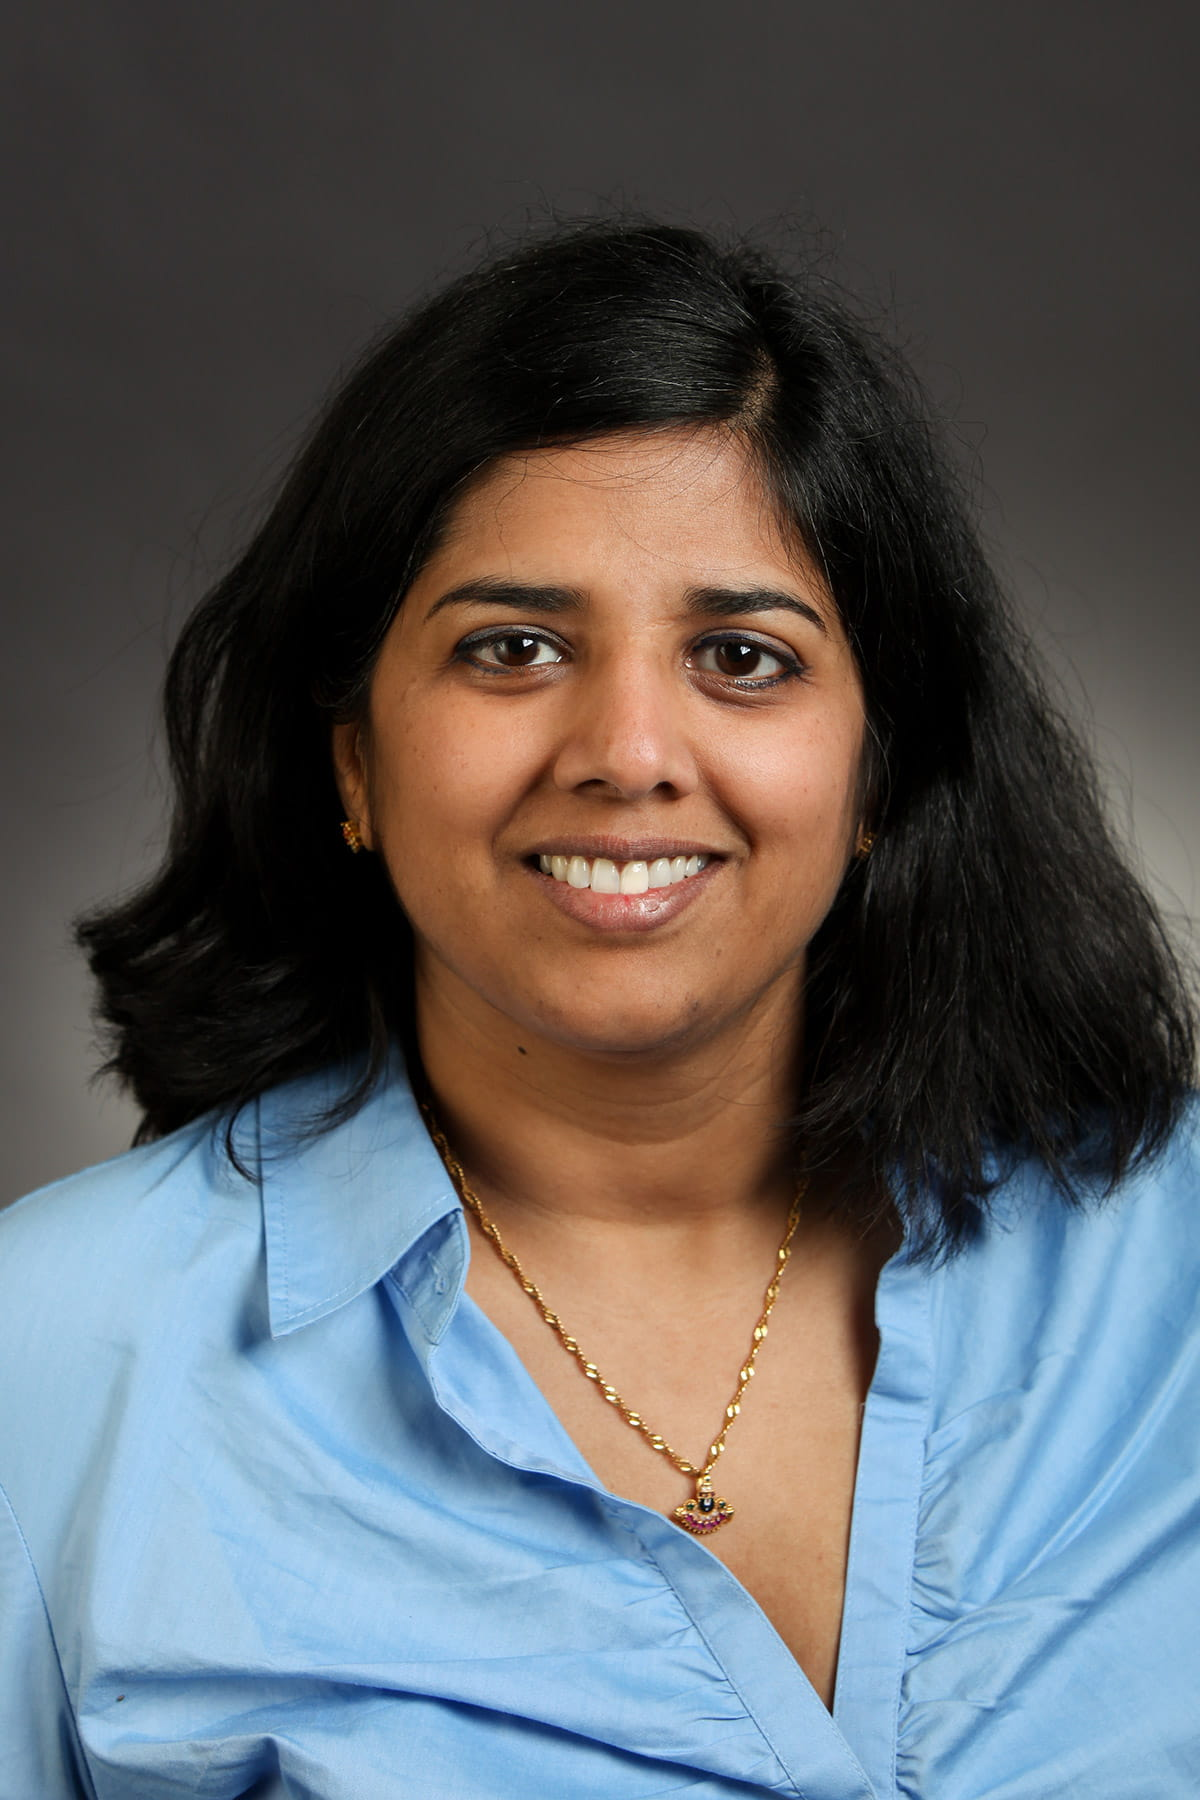 A photo of Selena L. Hariharan.